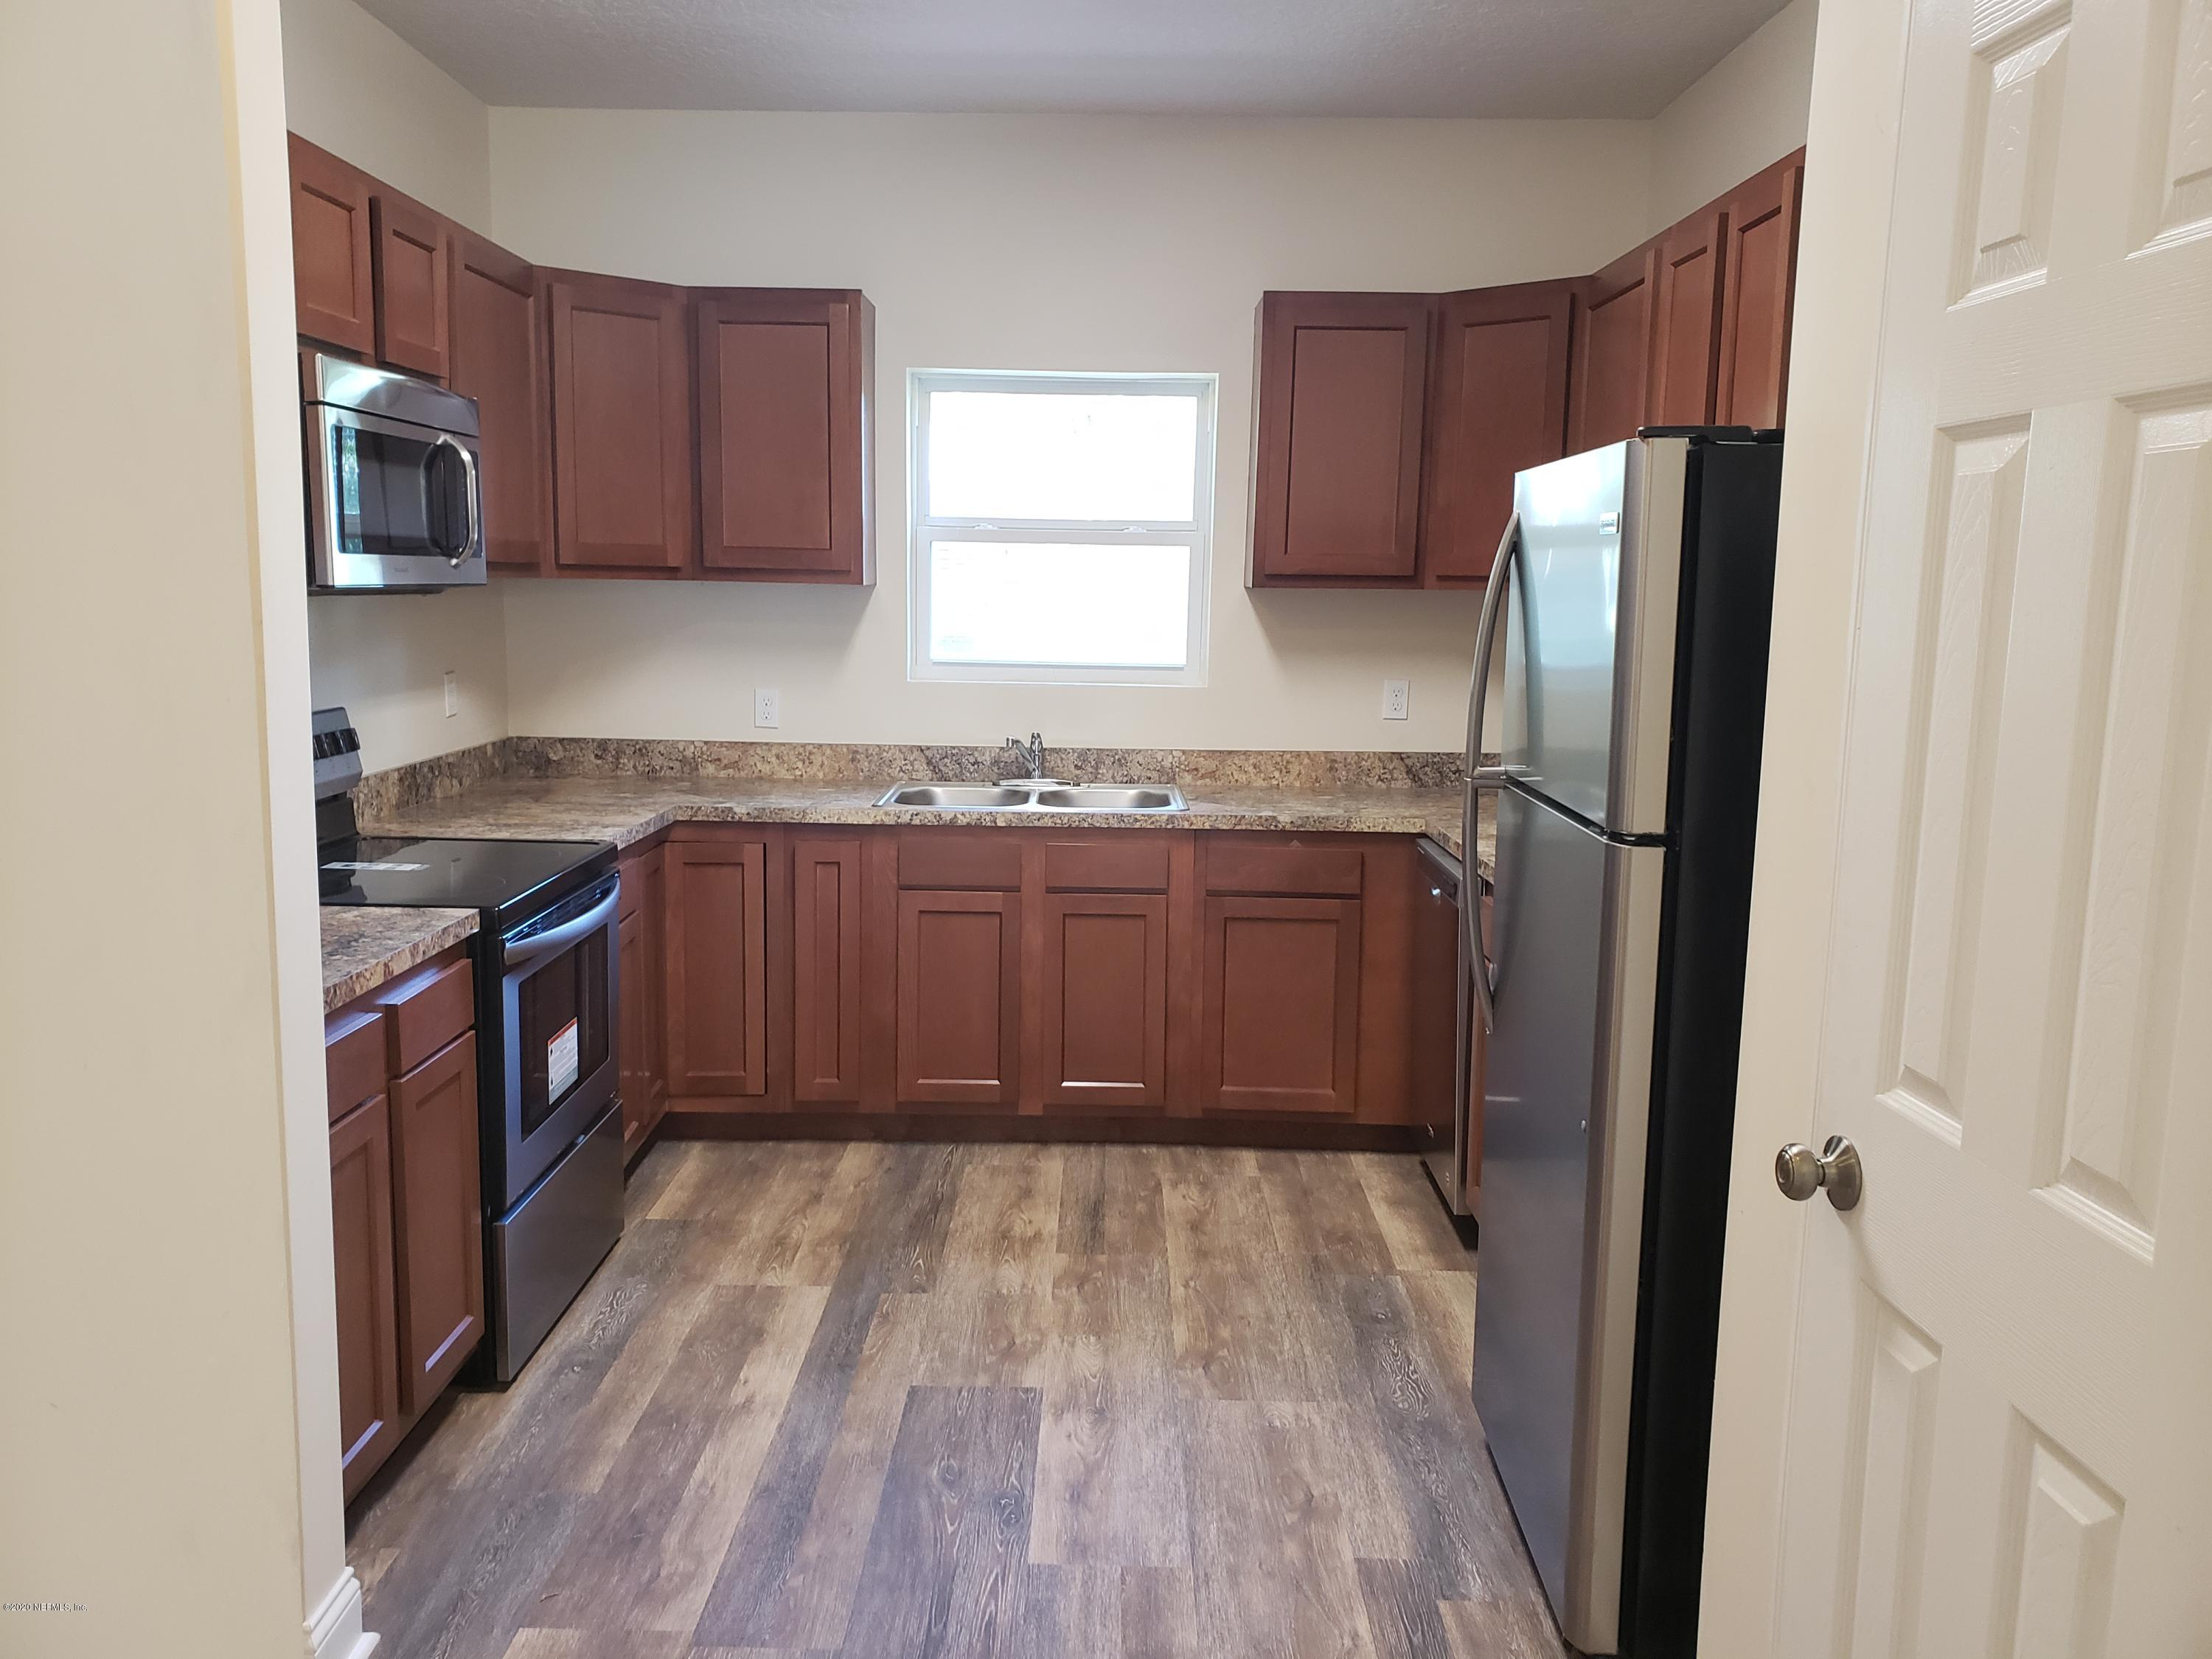 621 64TH, JACKSONVILLE, FLORIDA 32208, 3 Bedrooms Bedrooms, ,2 BathroomsBathrooms,Residential,For sale,64TH,1045467